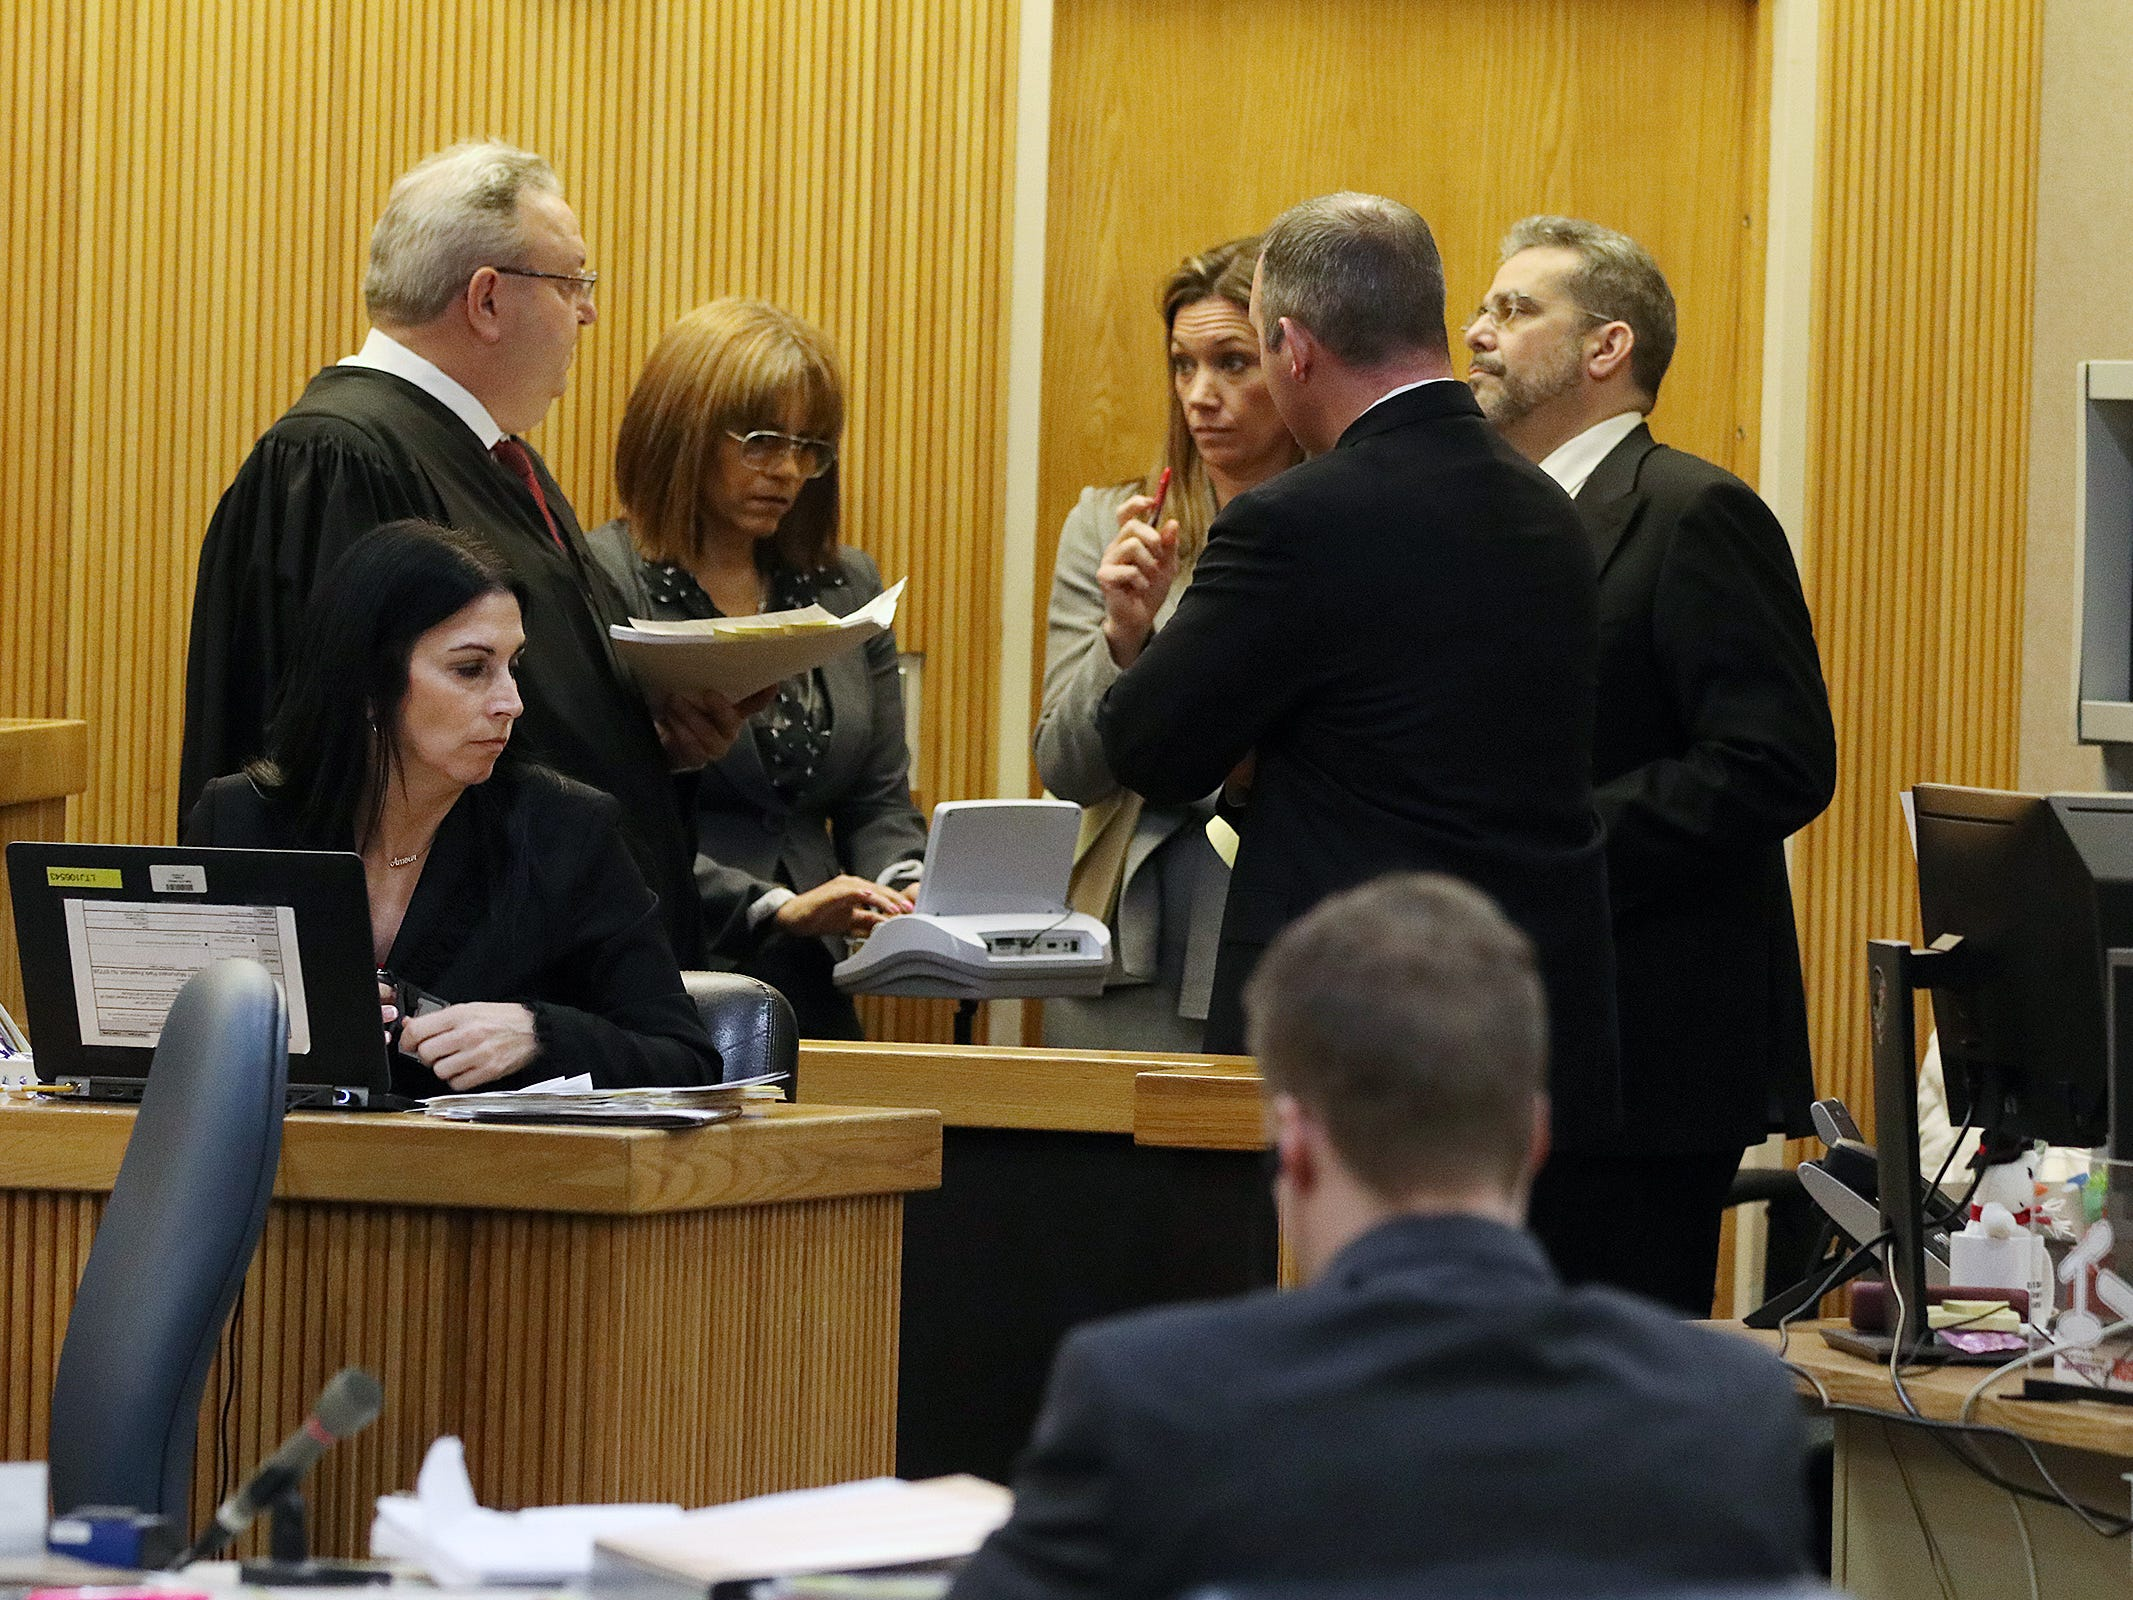 Liam McAtasney, who is charged with the murder of former high school classmate, Sarah Stern, listens as Superior Court Judge Richard W. English and attorneys during a sidebar during trial at the Monmouth County Courthouse in Freehold, NJ Thursday, February 14, 2019. The judge was considering a motion from the defense for a mistrial after it was discovered that two jurors, who were later dismissed, were communicating on Facebook Messenger.